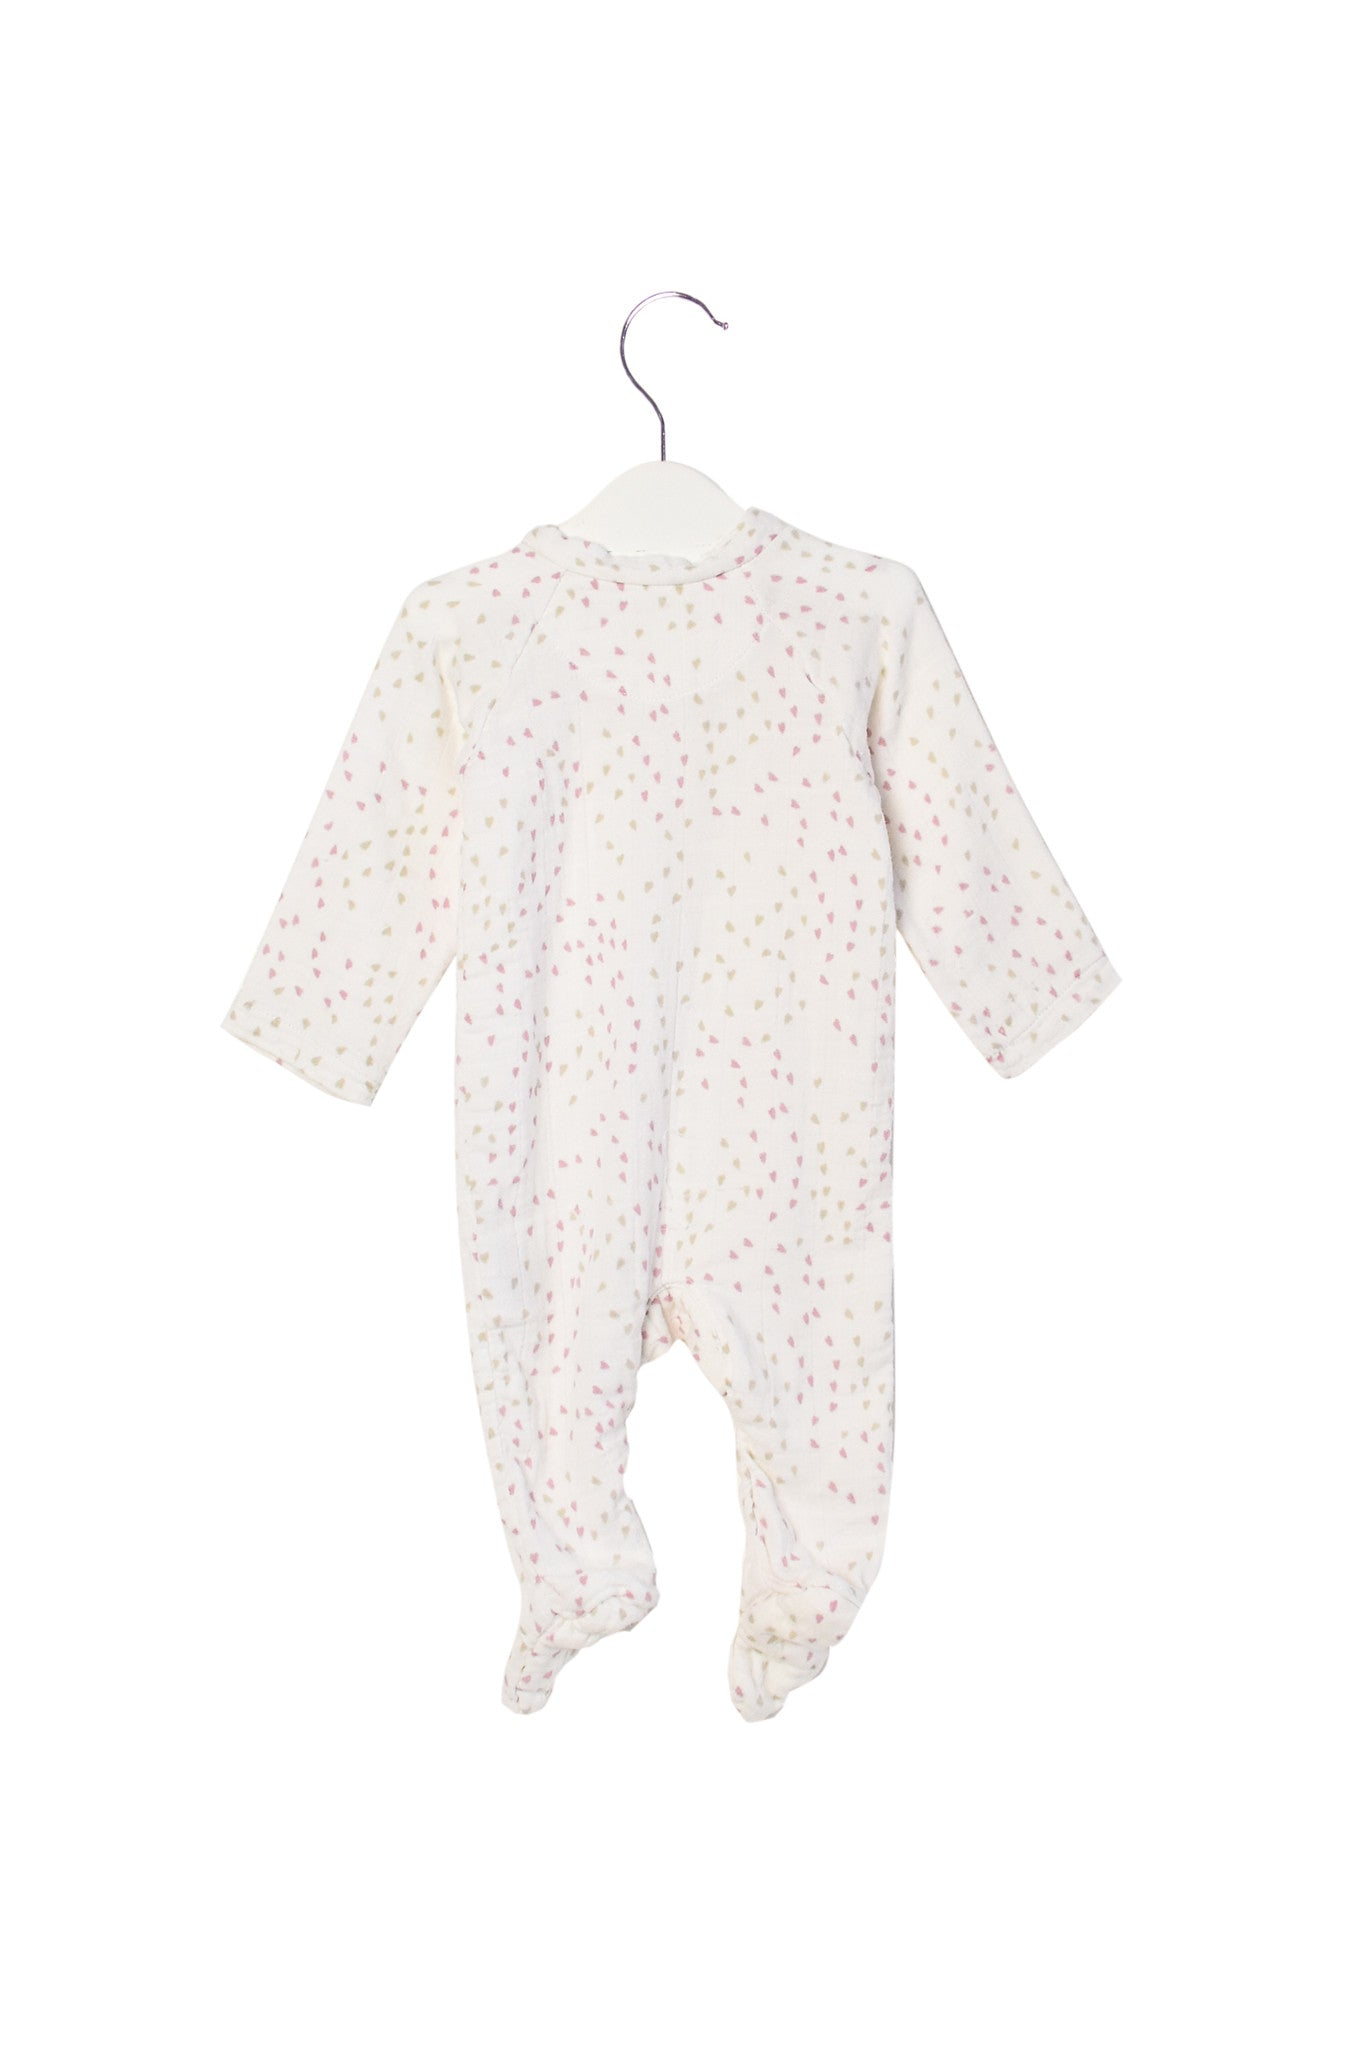 10003610 Aden & Anais Baby~Jumpsuit 0-3M at Retykle